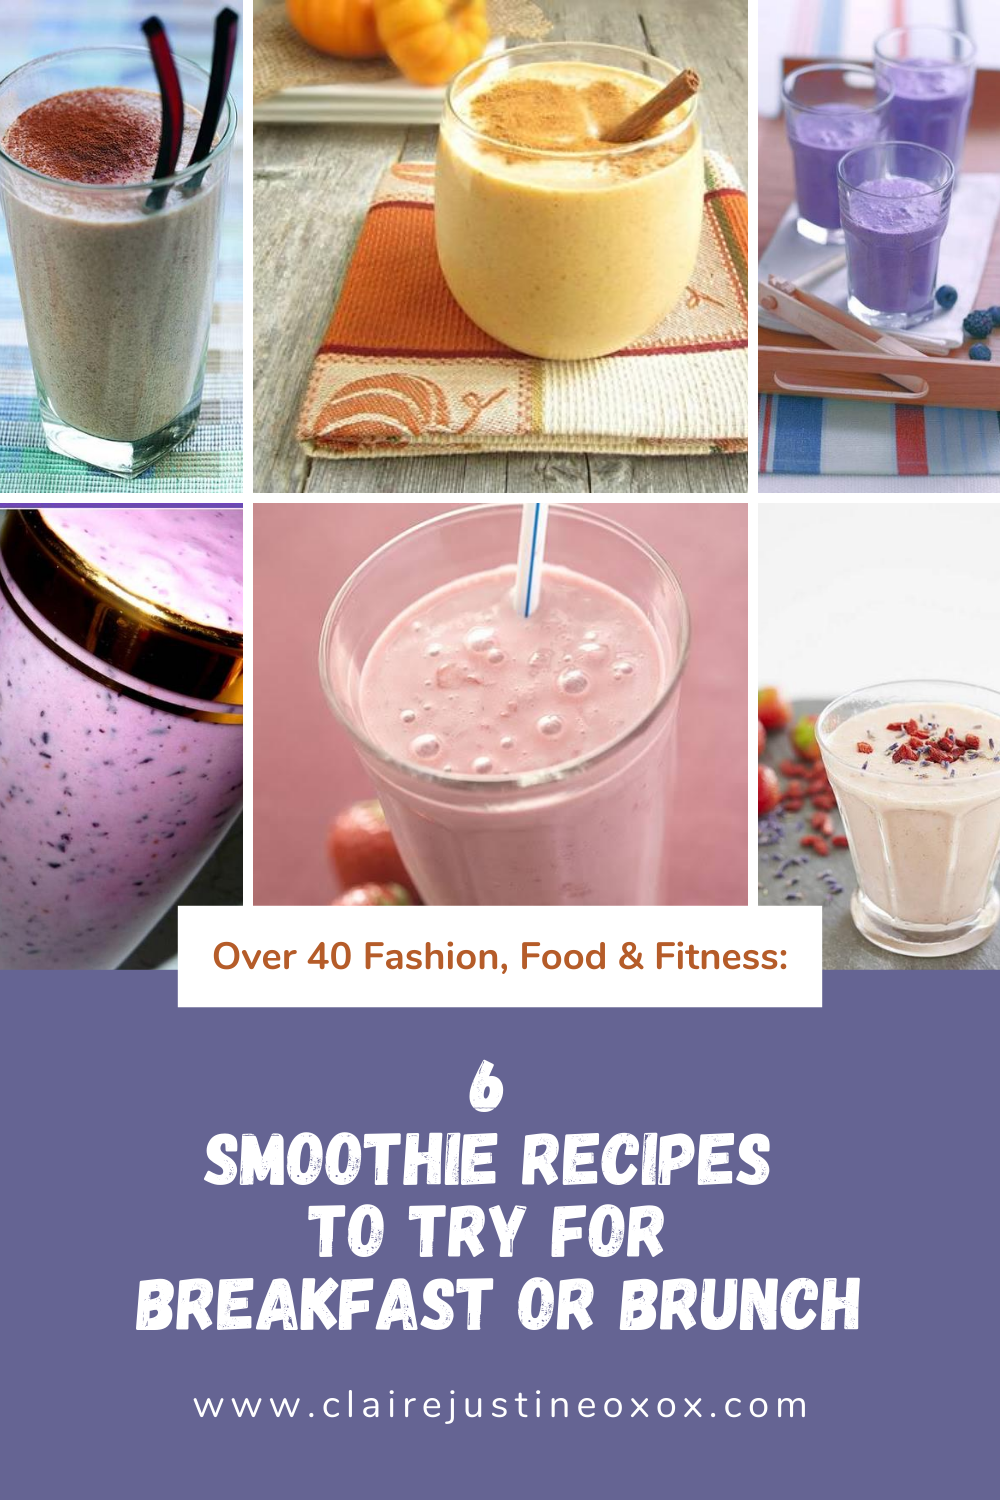 6 smoothie recipes